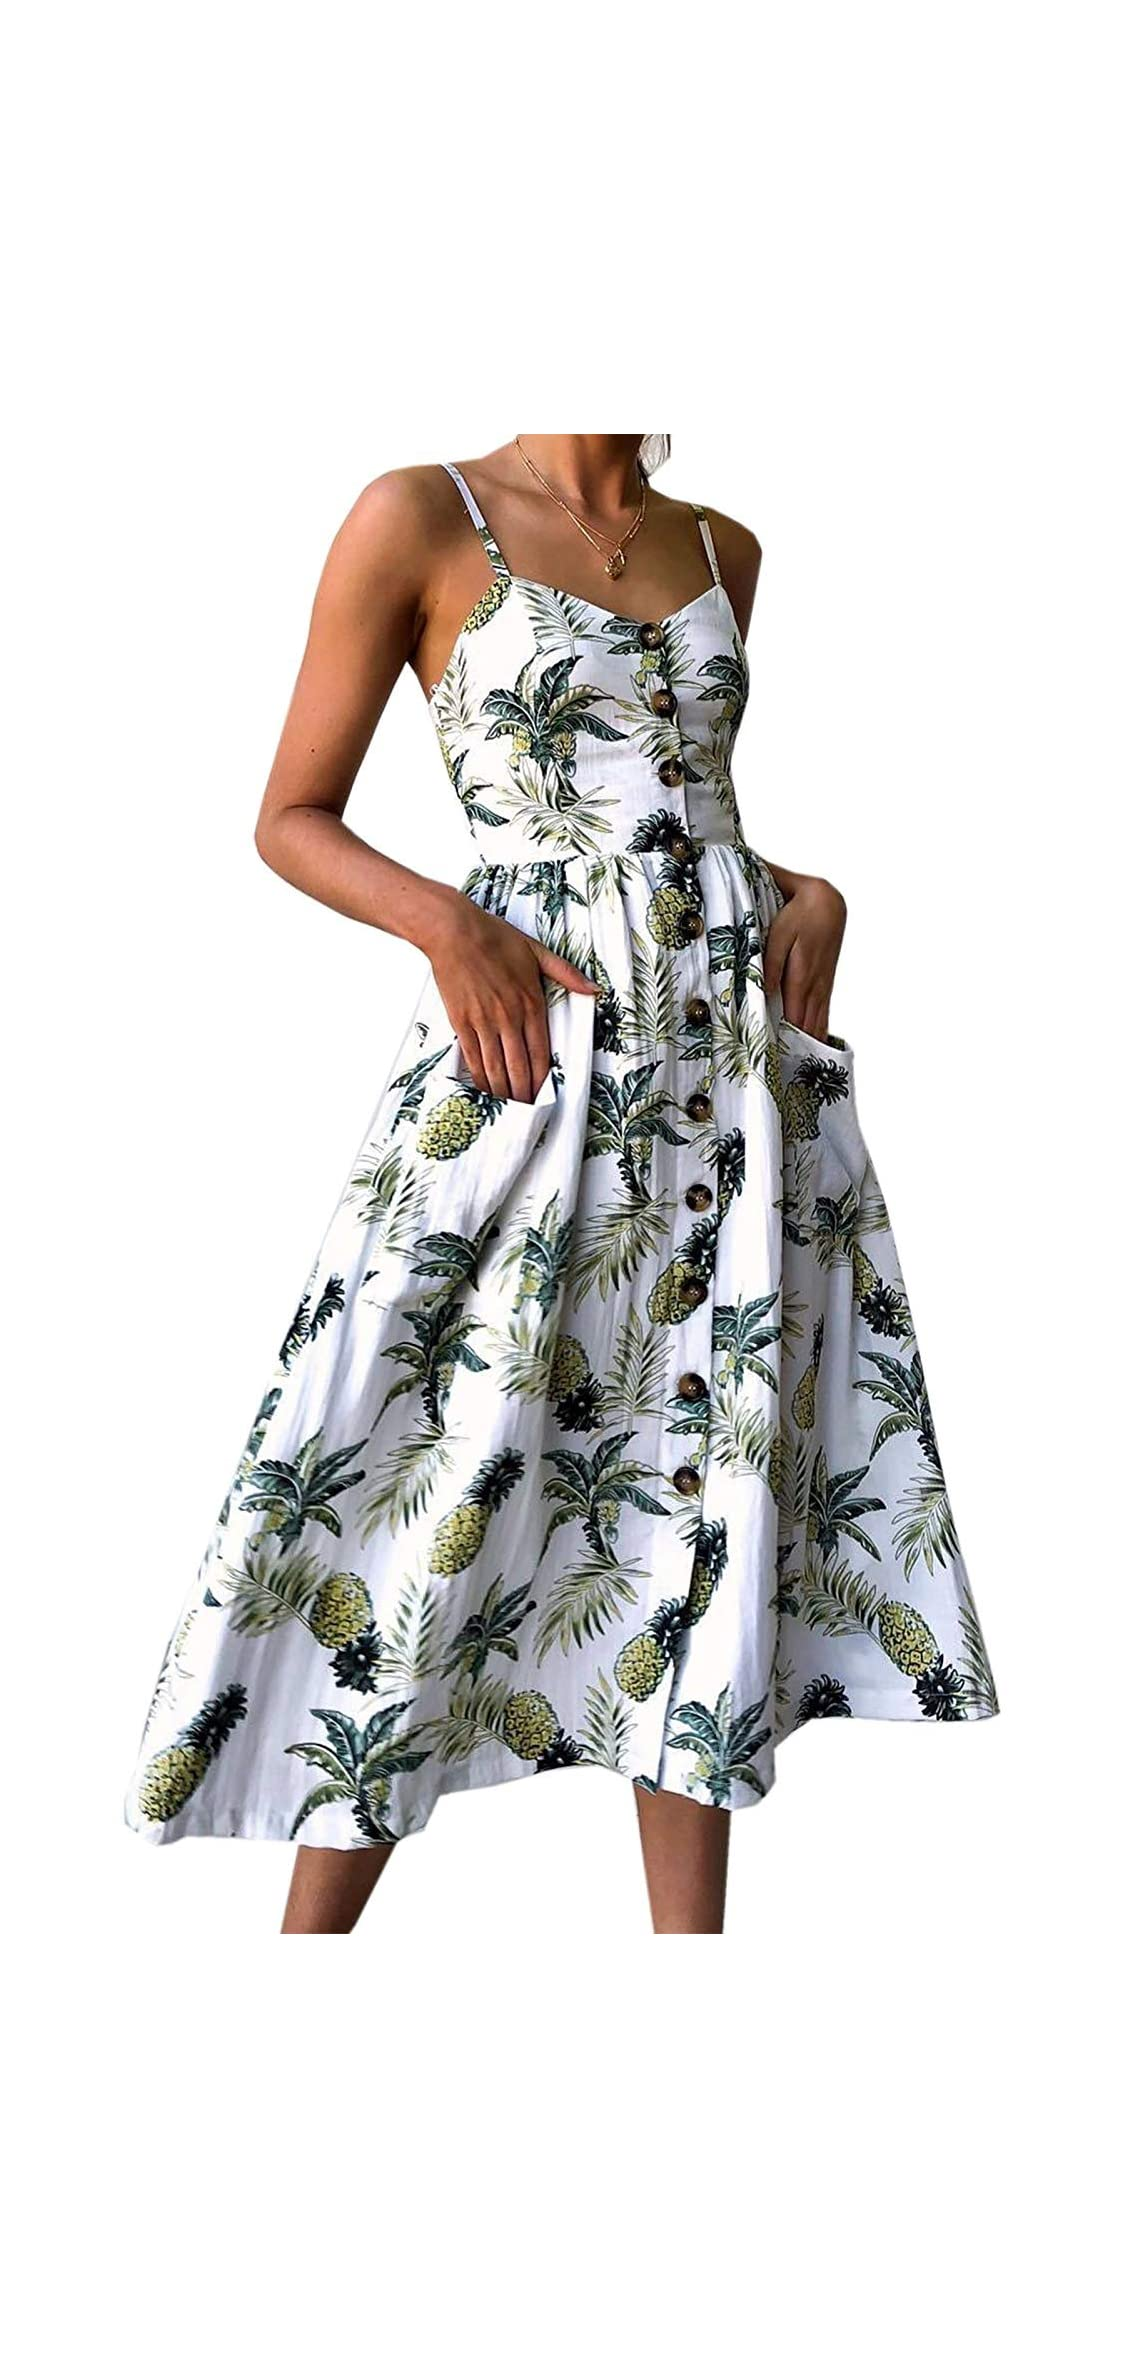 Women's Summer Sundress Spaghetti Strap Floral Button